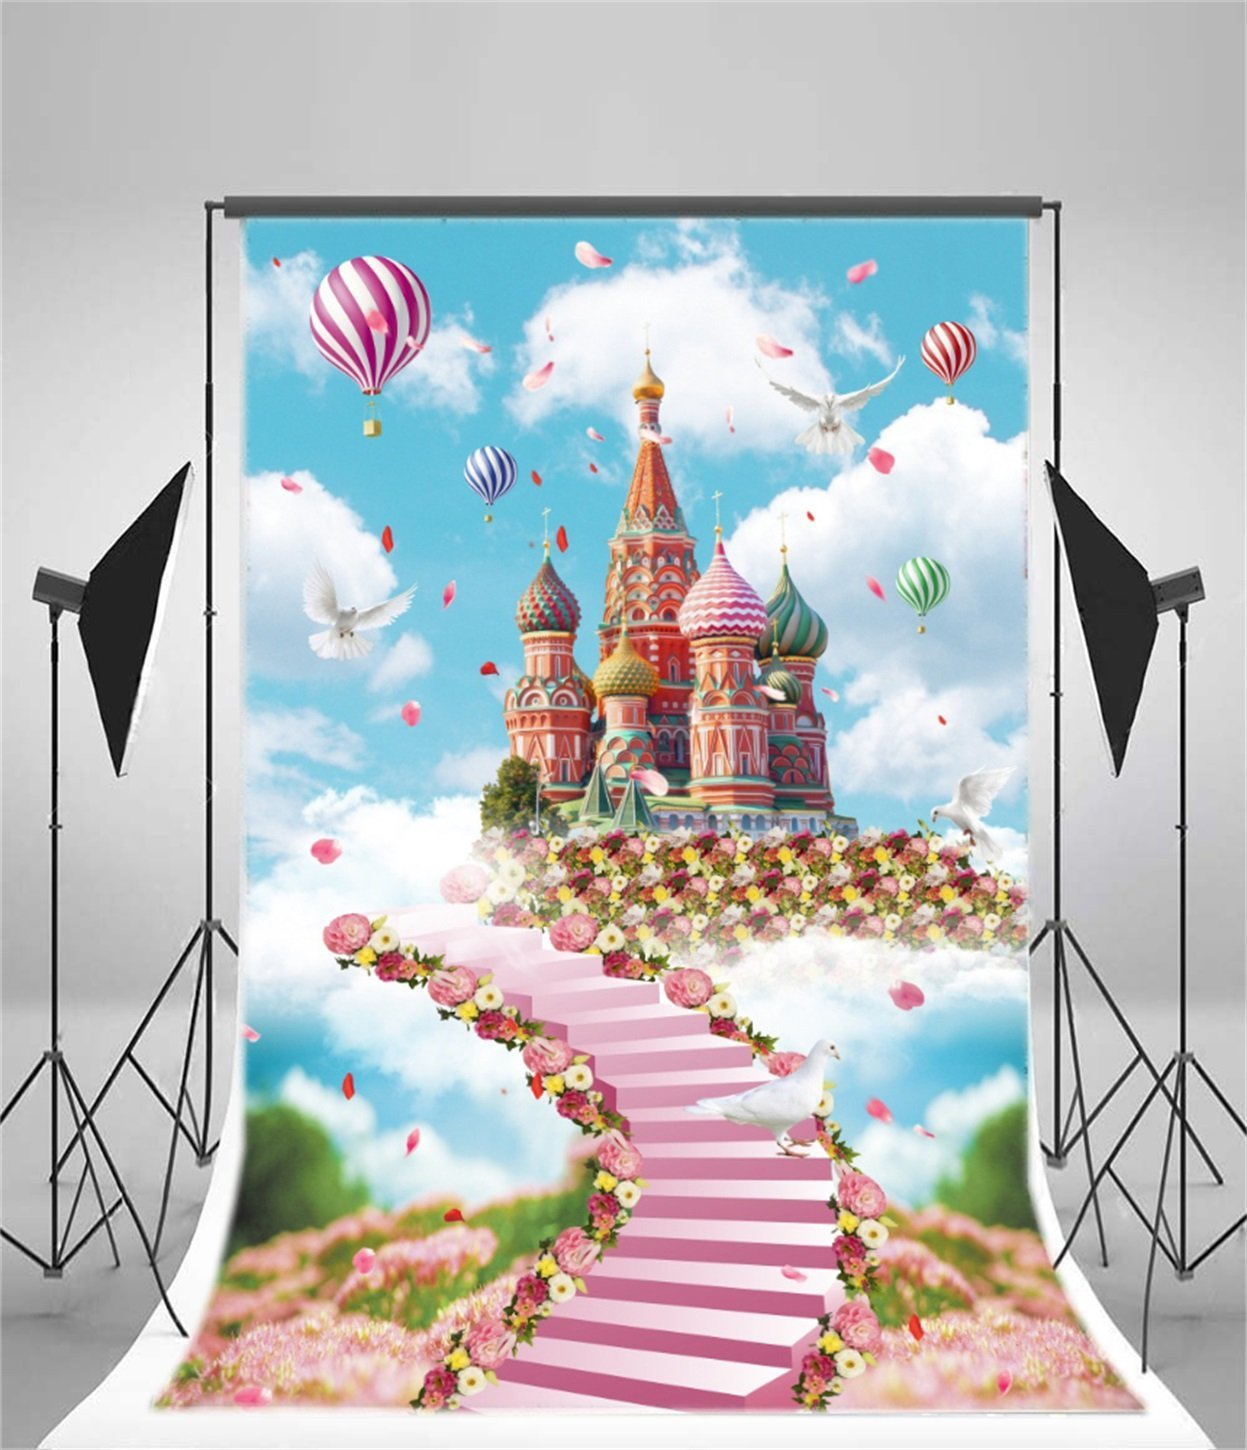 princess fairy tale castle flowers staircase sky clouds hot air balloon backdrops Vinyl cloth Computer print wall Background цена и фото